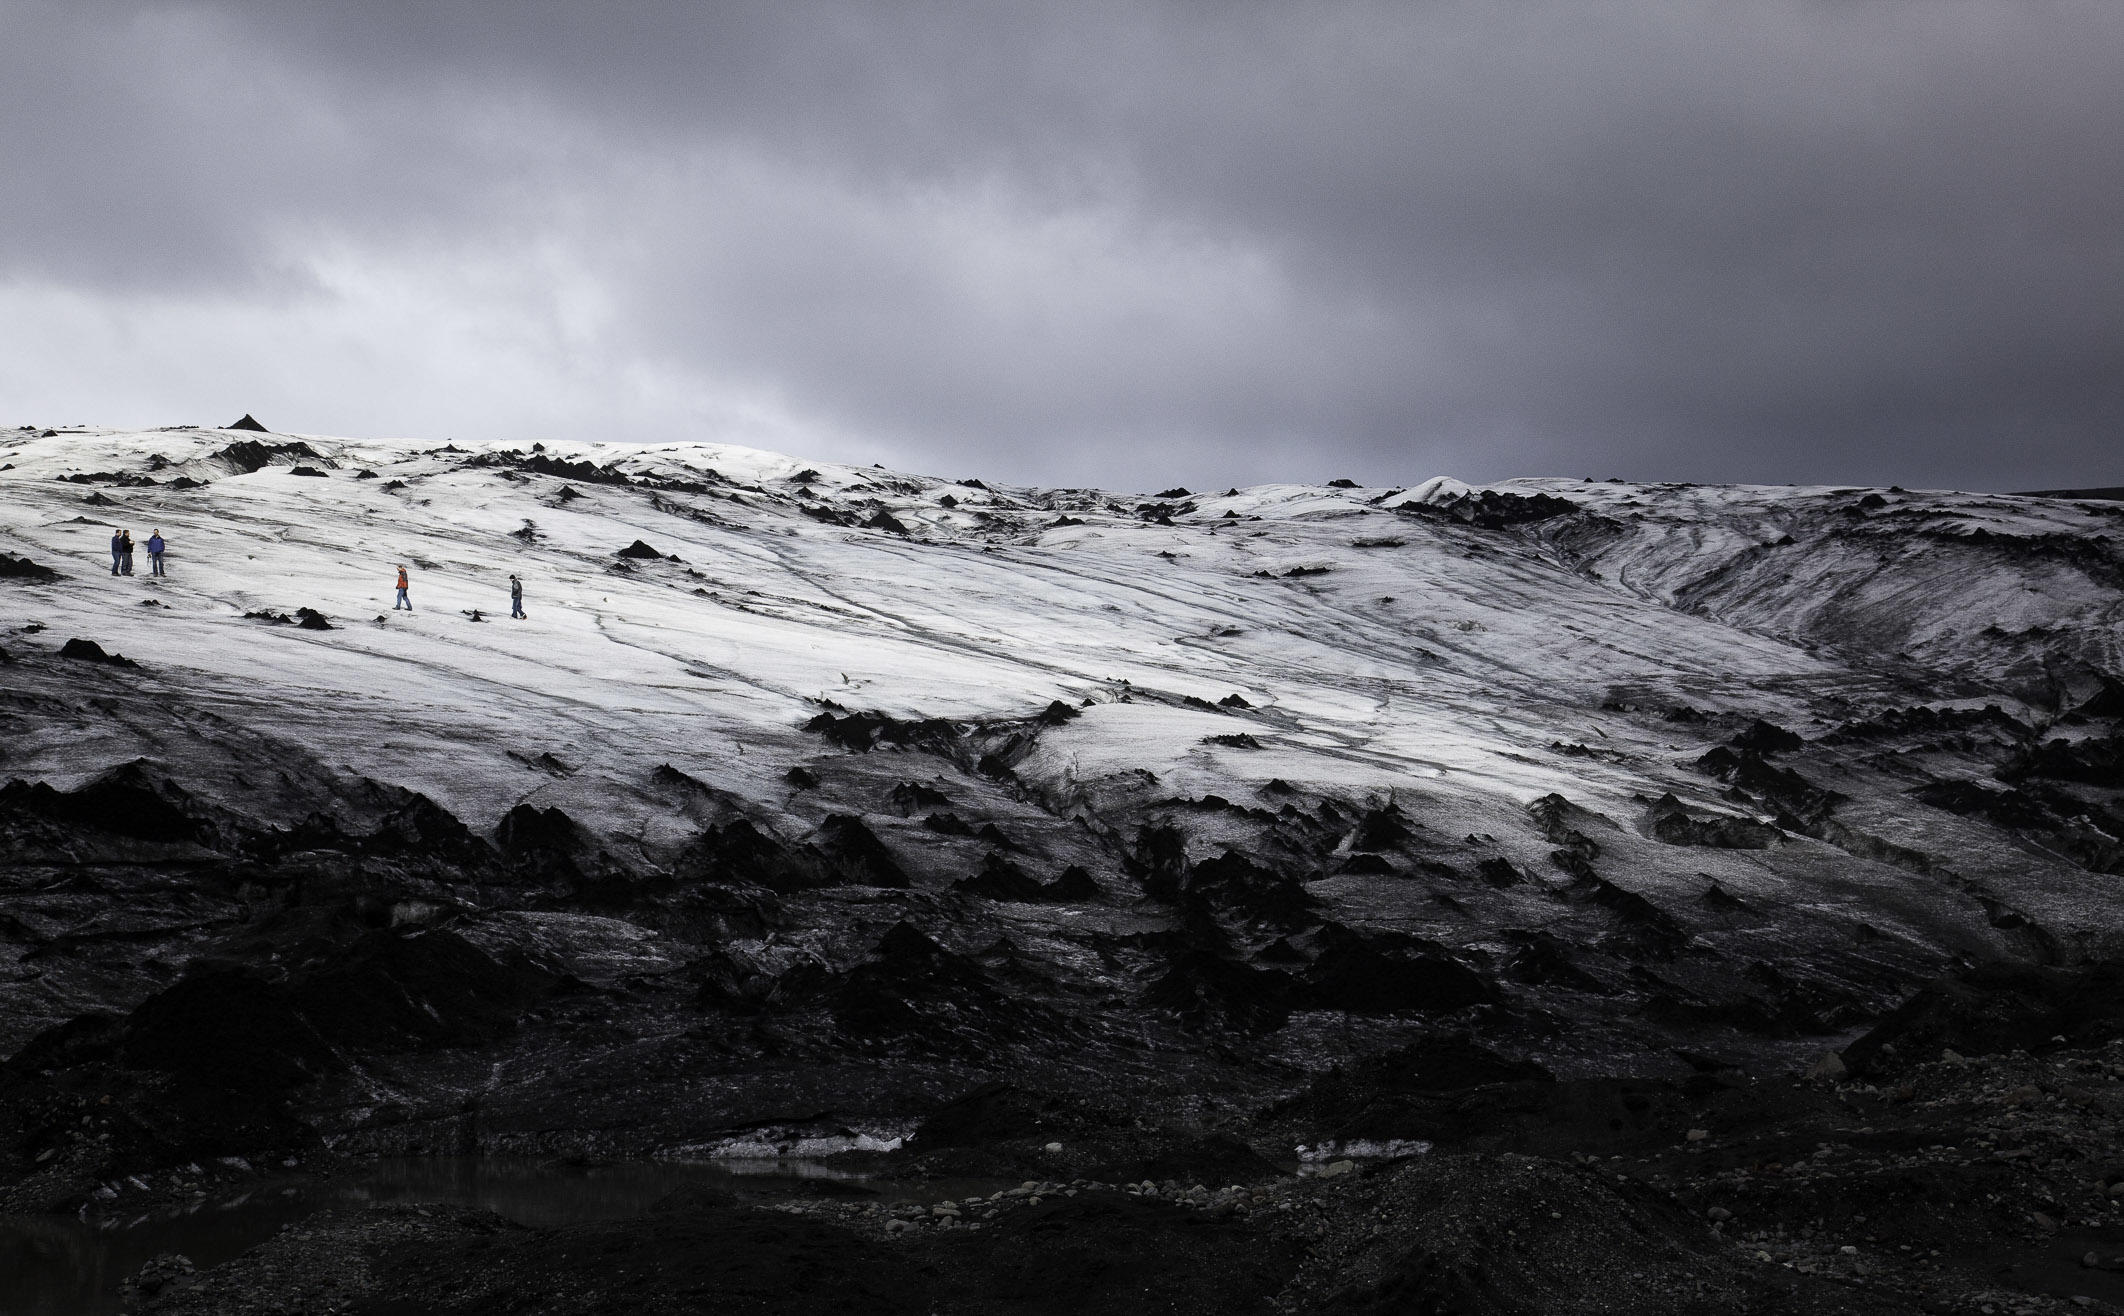 Hikers on Sólheimajökull, Iceland